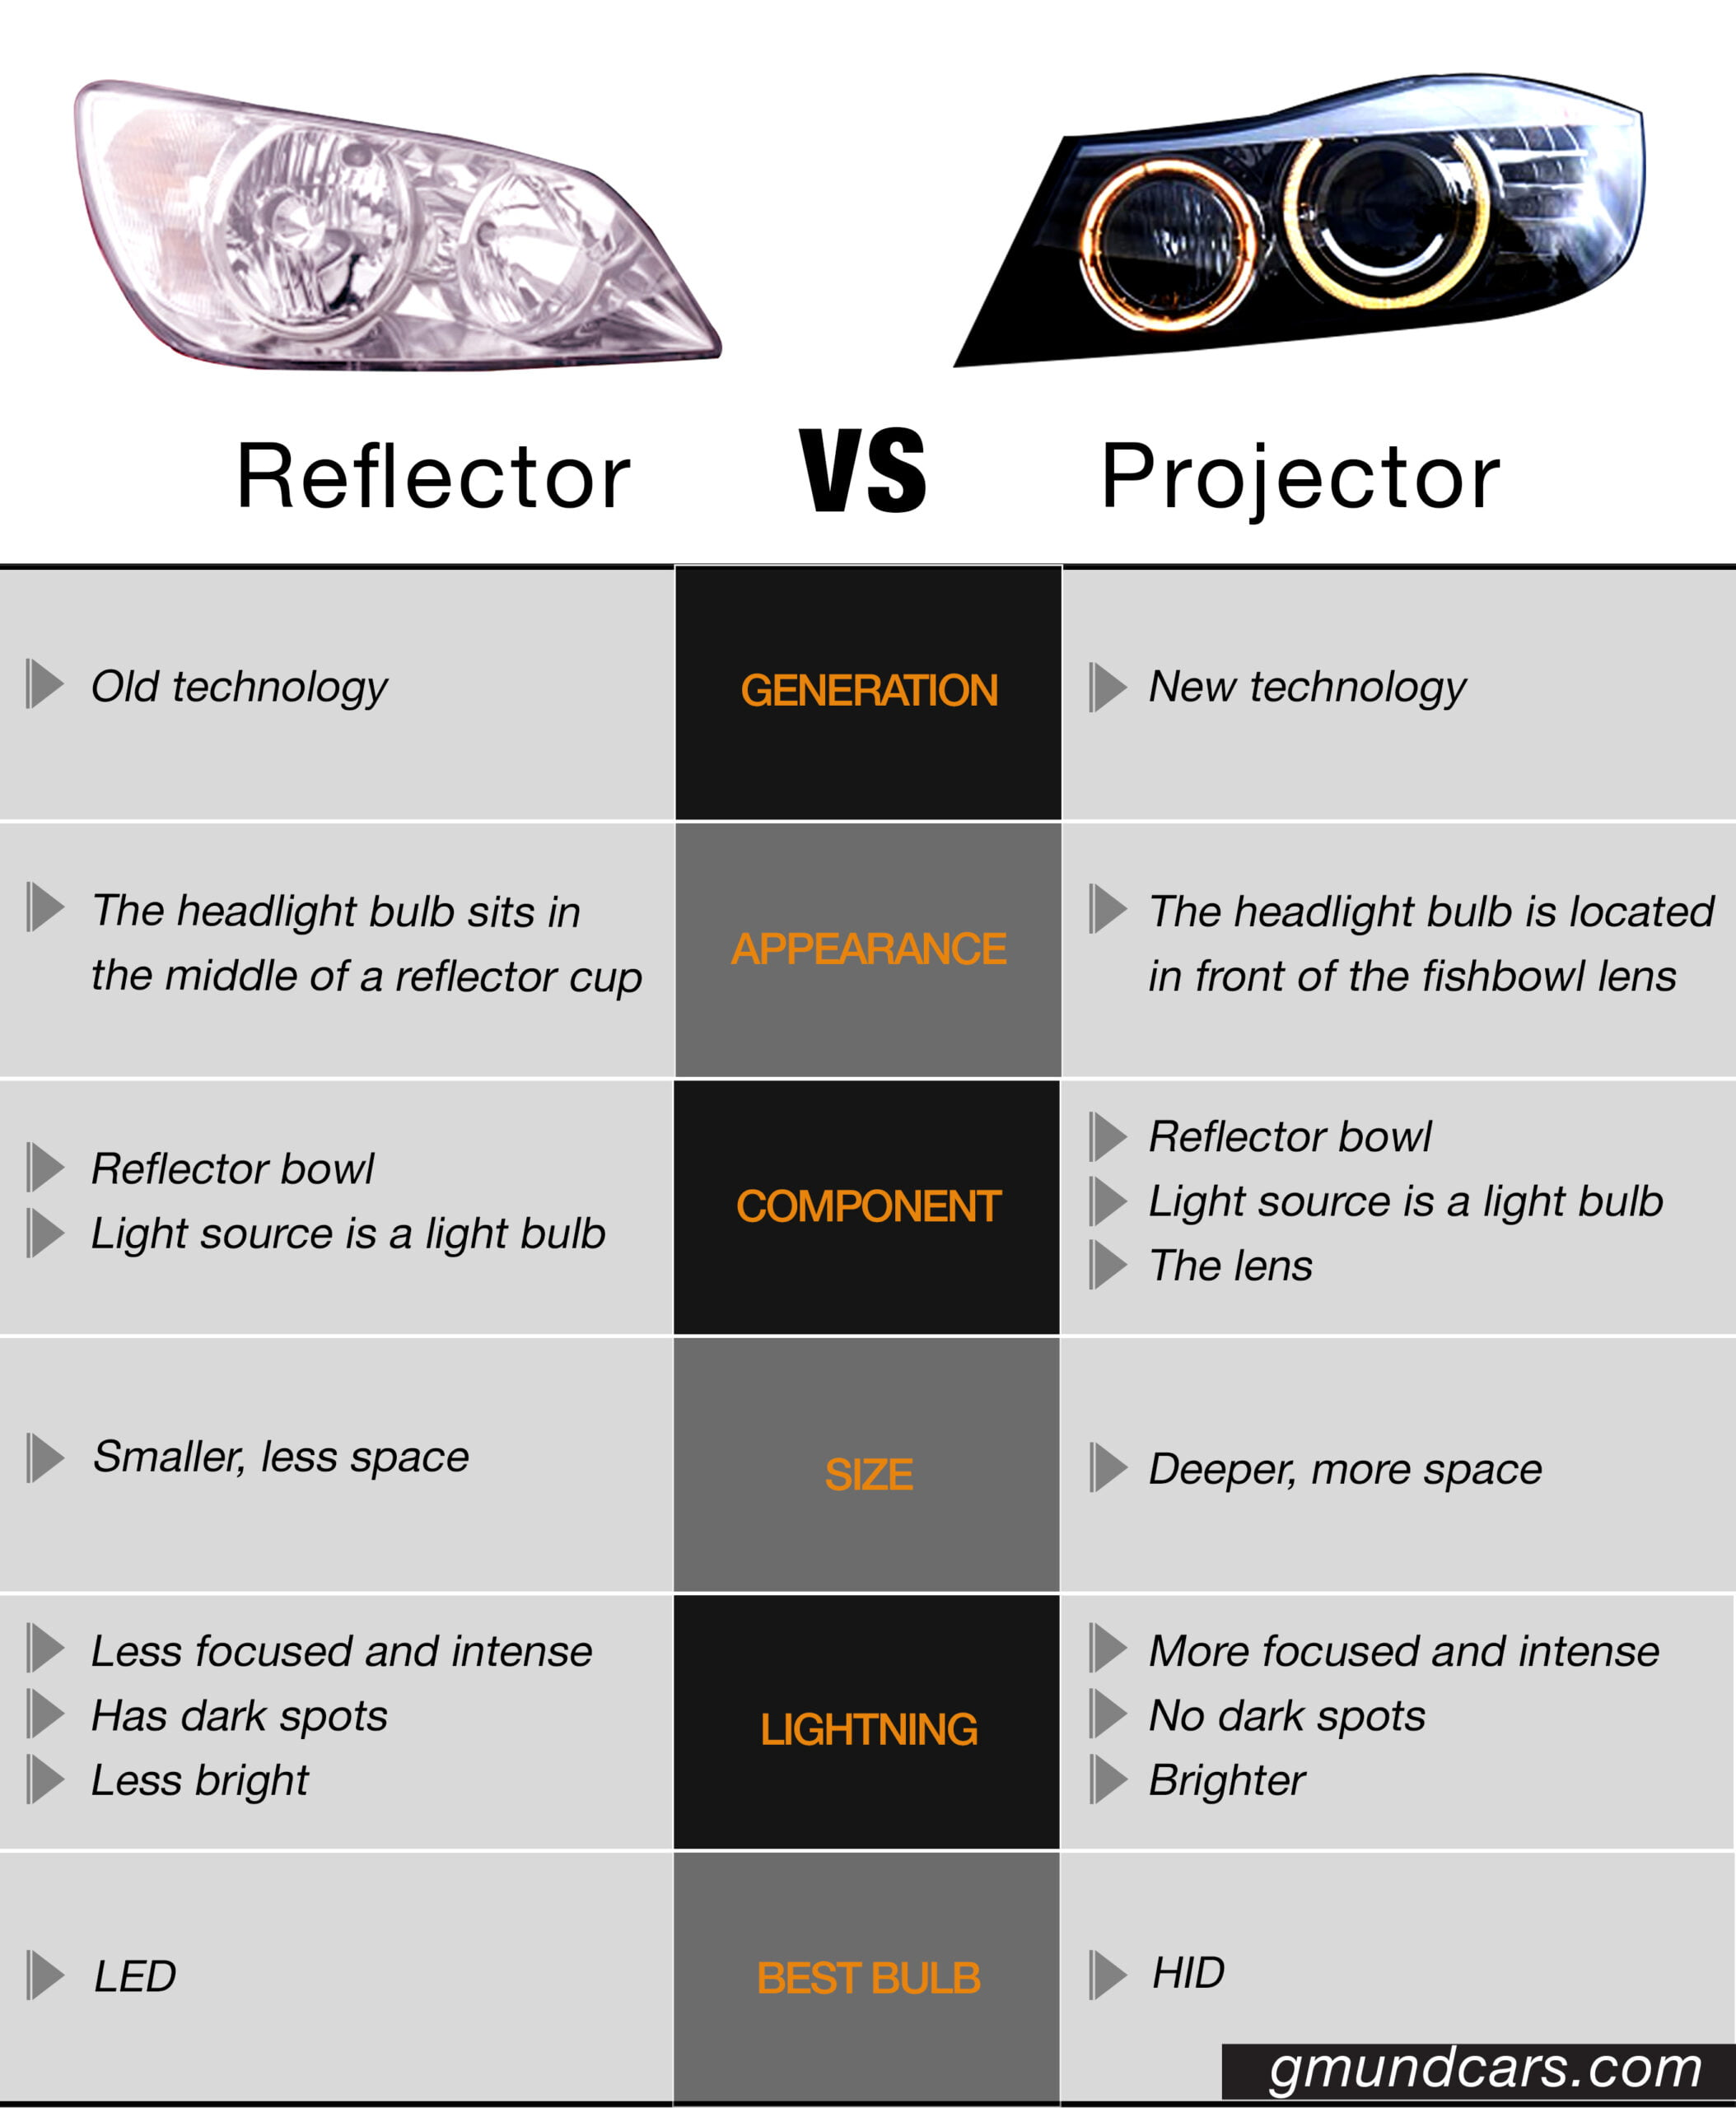 Reflector vs. Projector differences